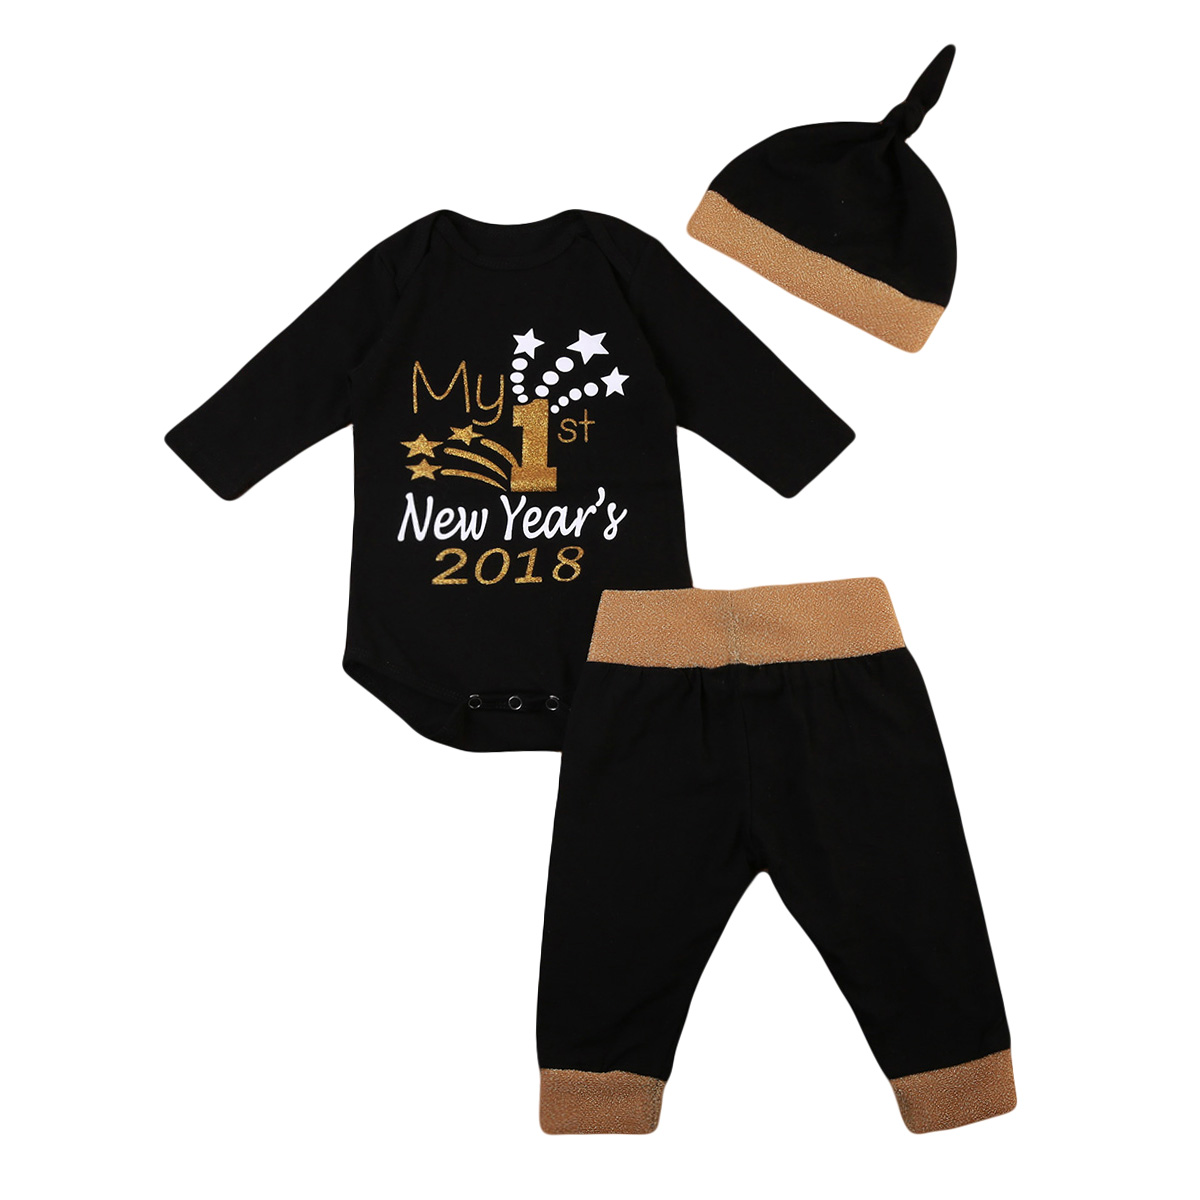 3Pcs/Set 2018 New Year Cute Infant Baby Girl Boy Clothes Set long Sleeve Tops Bodysuit Long Pants Hat Fashion Brief Outfits newborn infant girl boy long sleeve romper floral deer pants baby coming home outfits set clothes